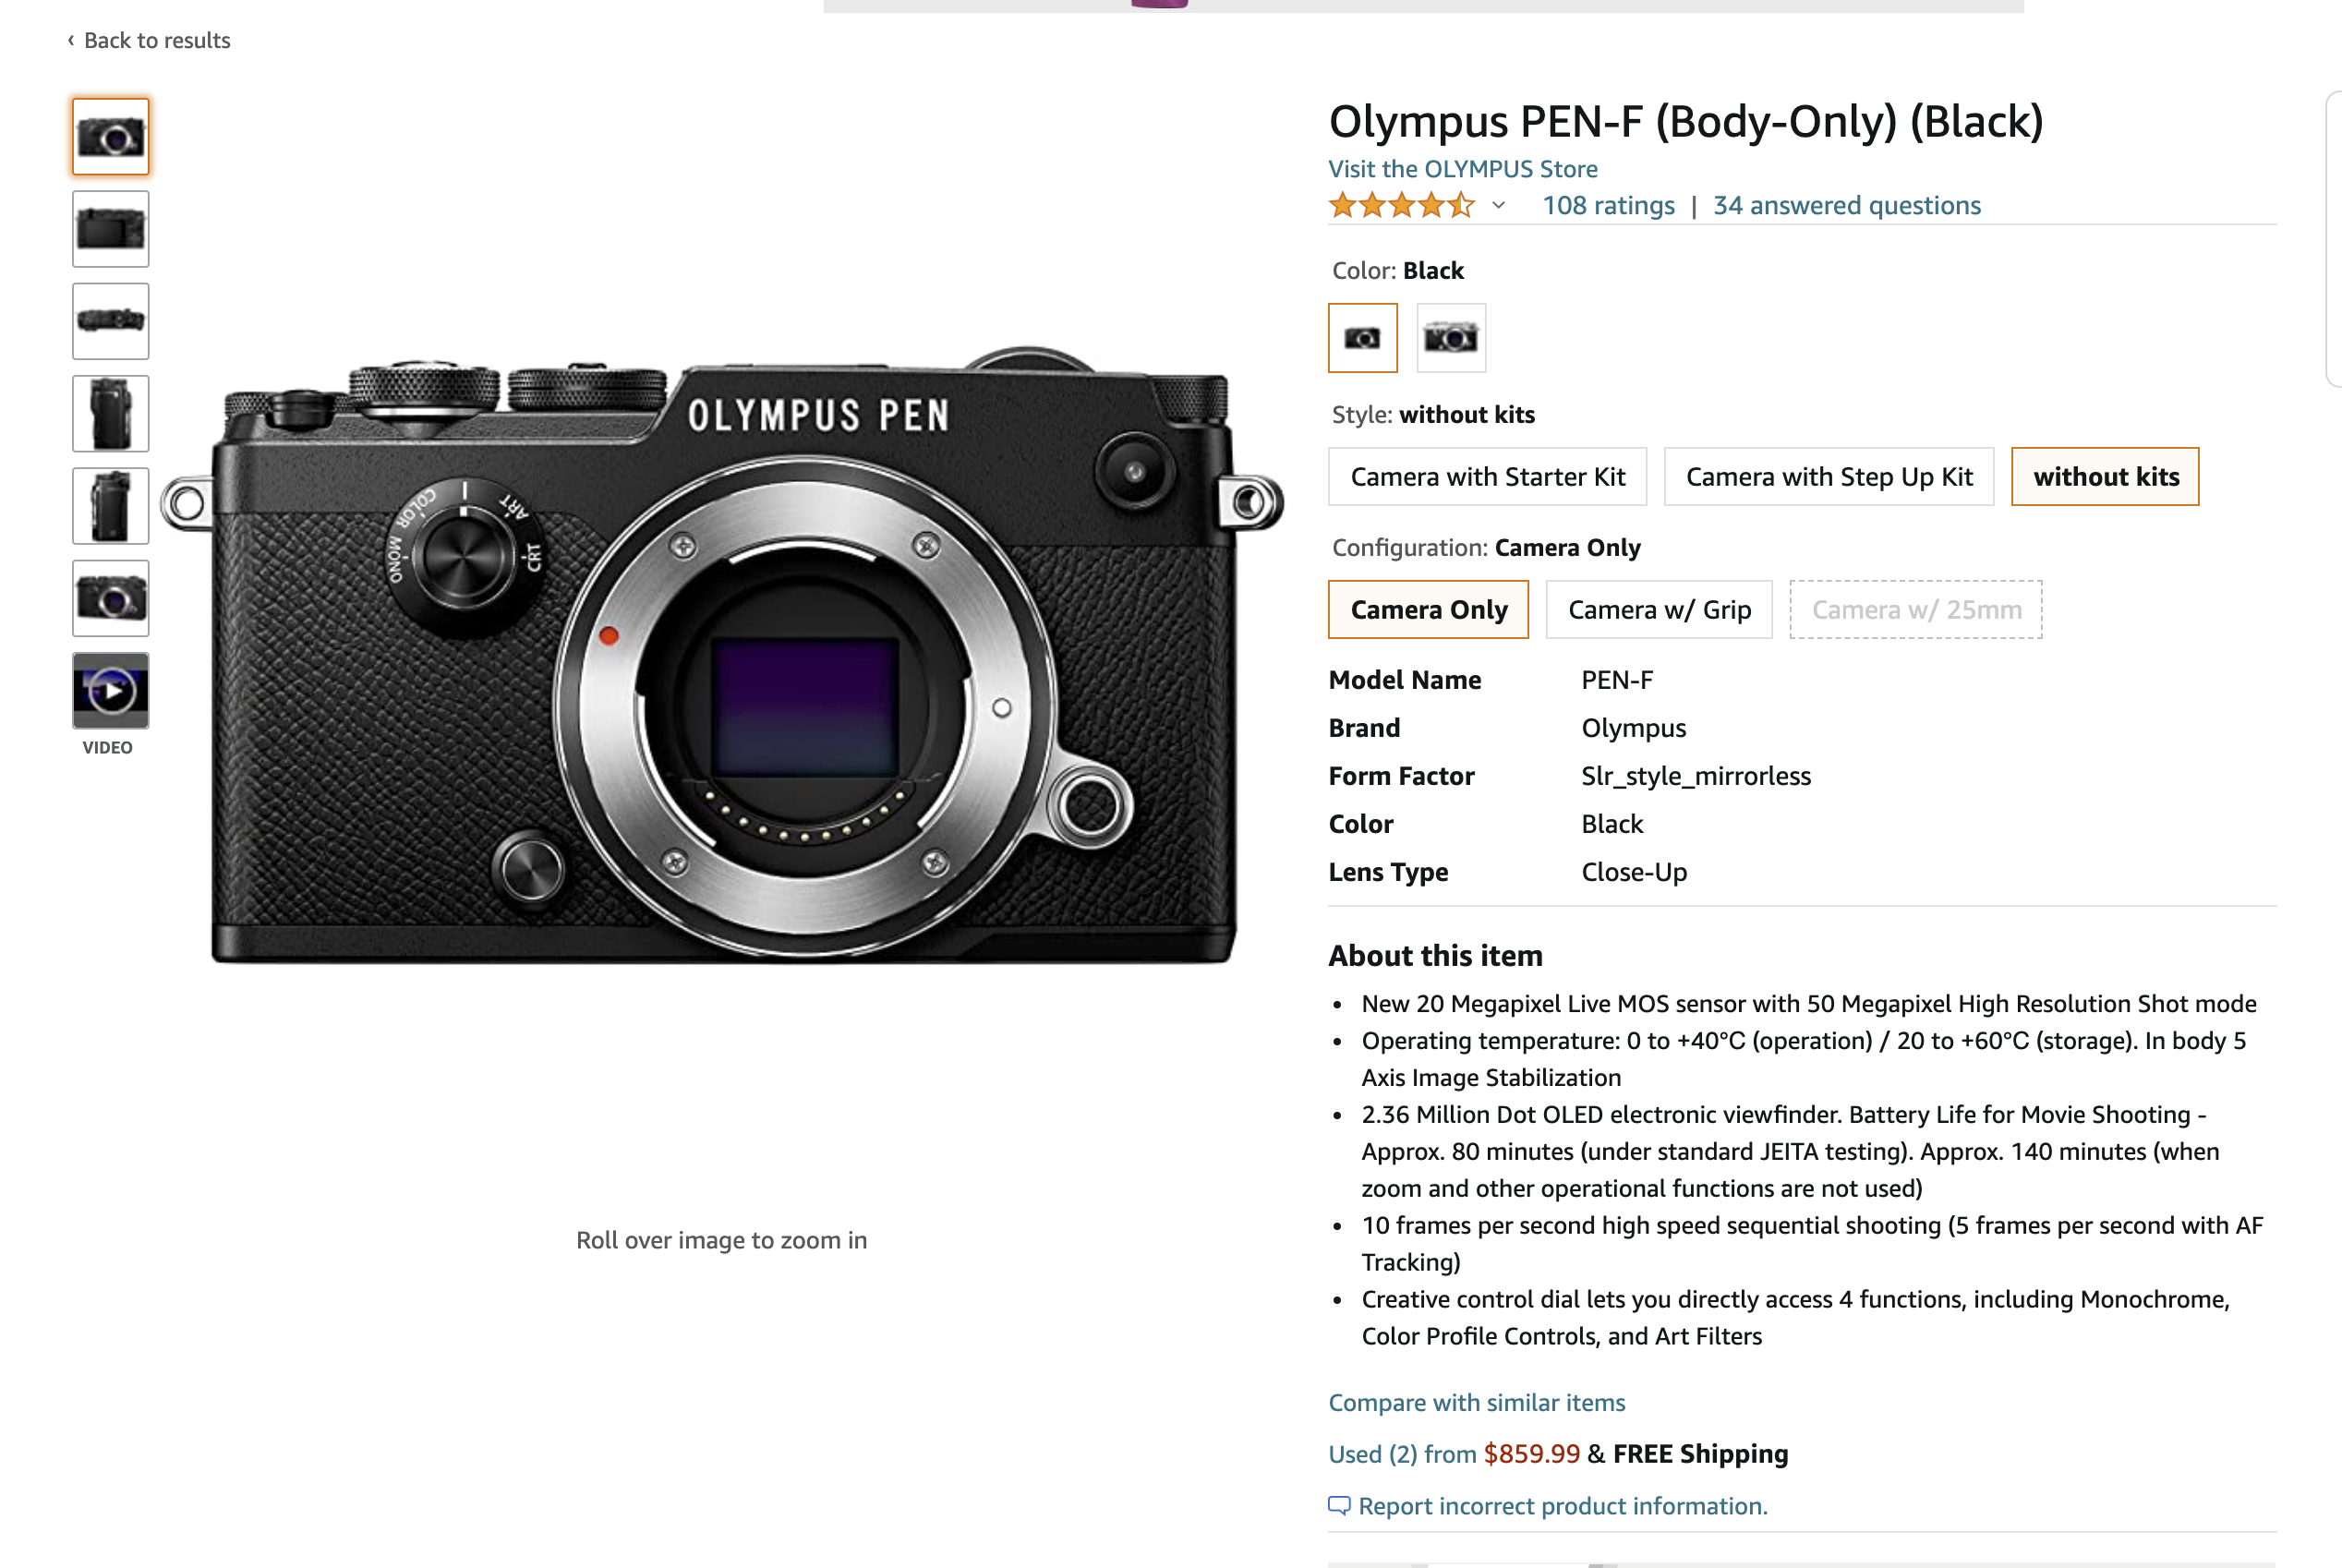 The Olympus Pen F Is Really Affordable if You Buy It Used